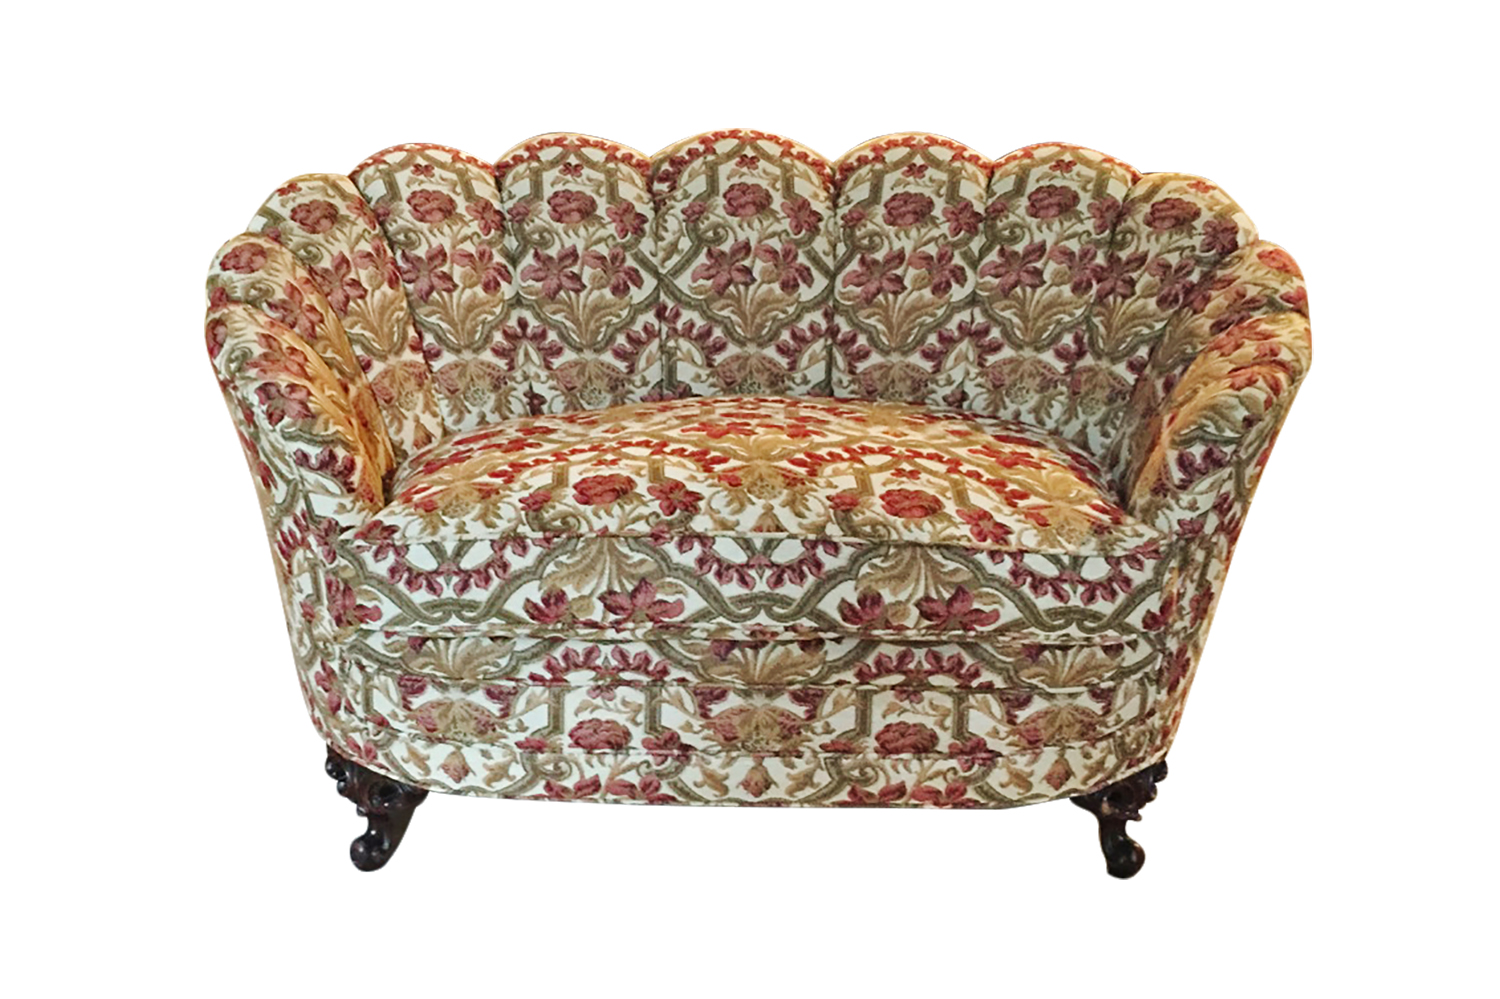 Reupholstering a vintage loveseat San Francisco Bay Area and Los Angeles